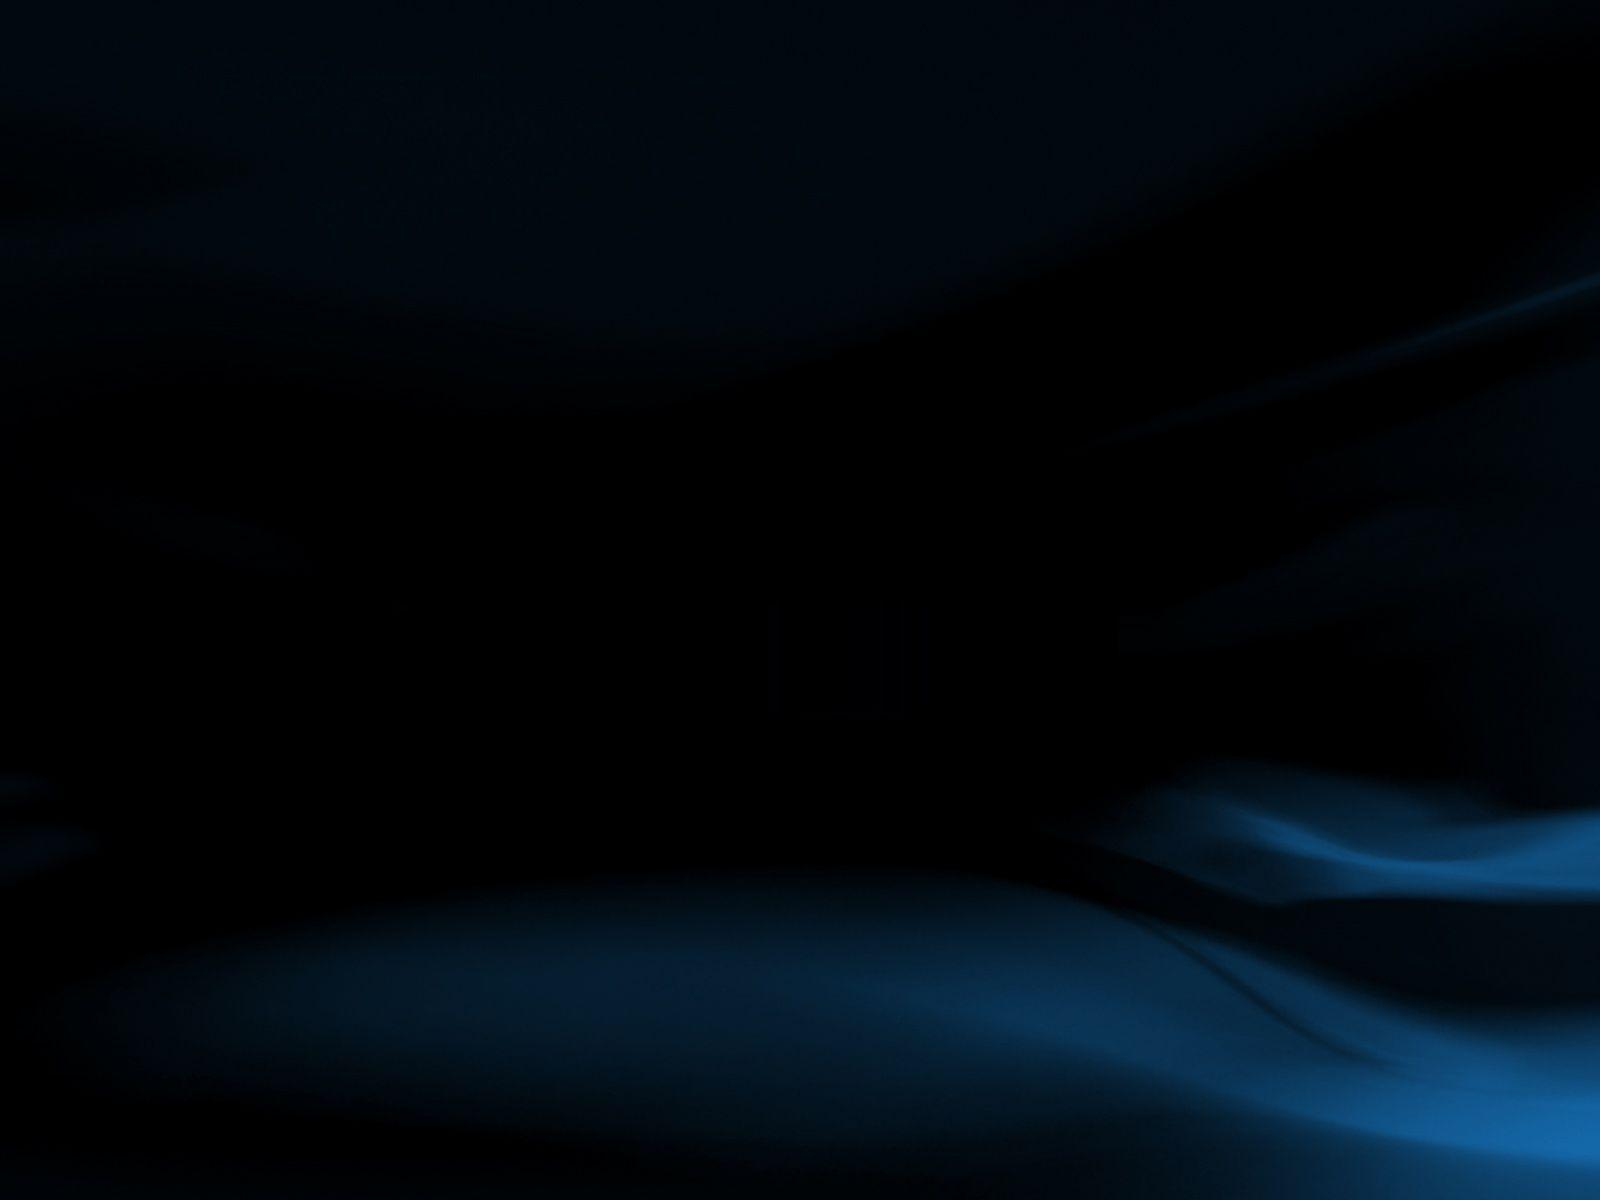 Download Black And Blue Abstract Wallpapers